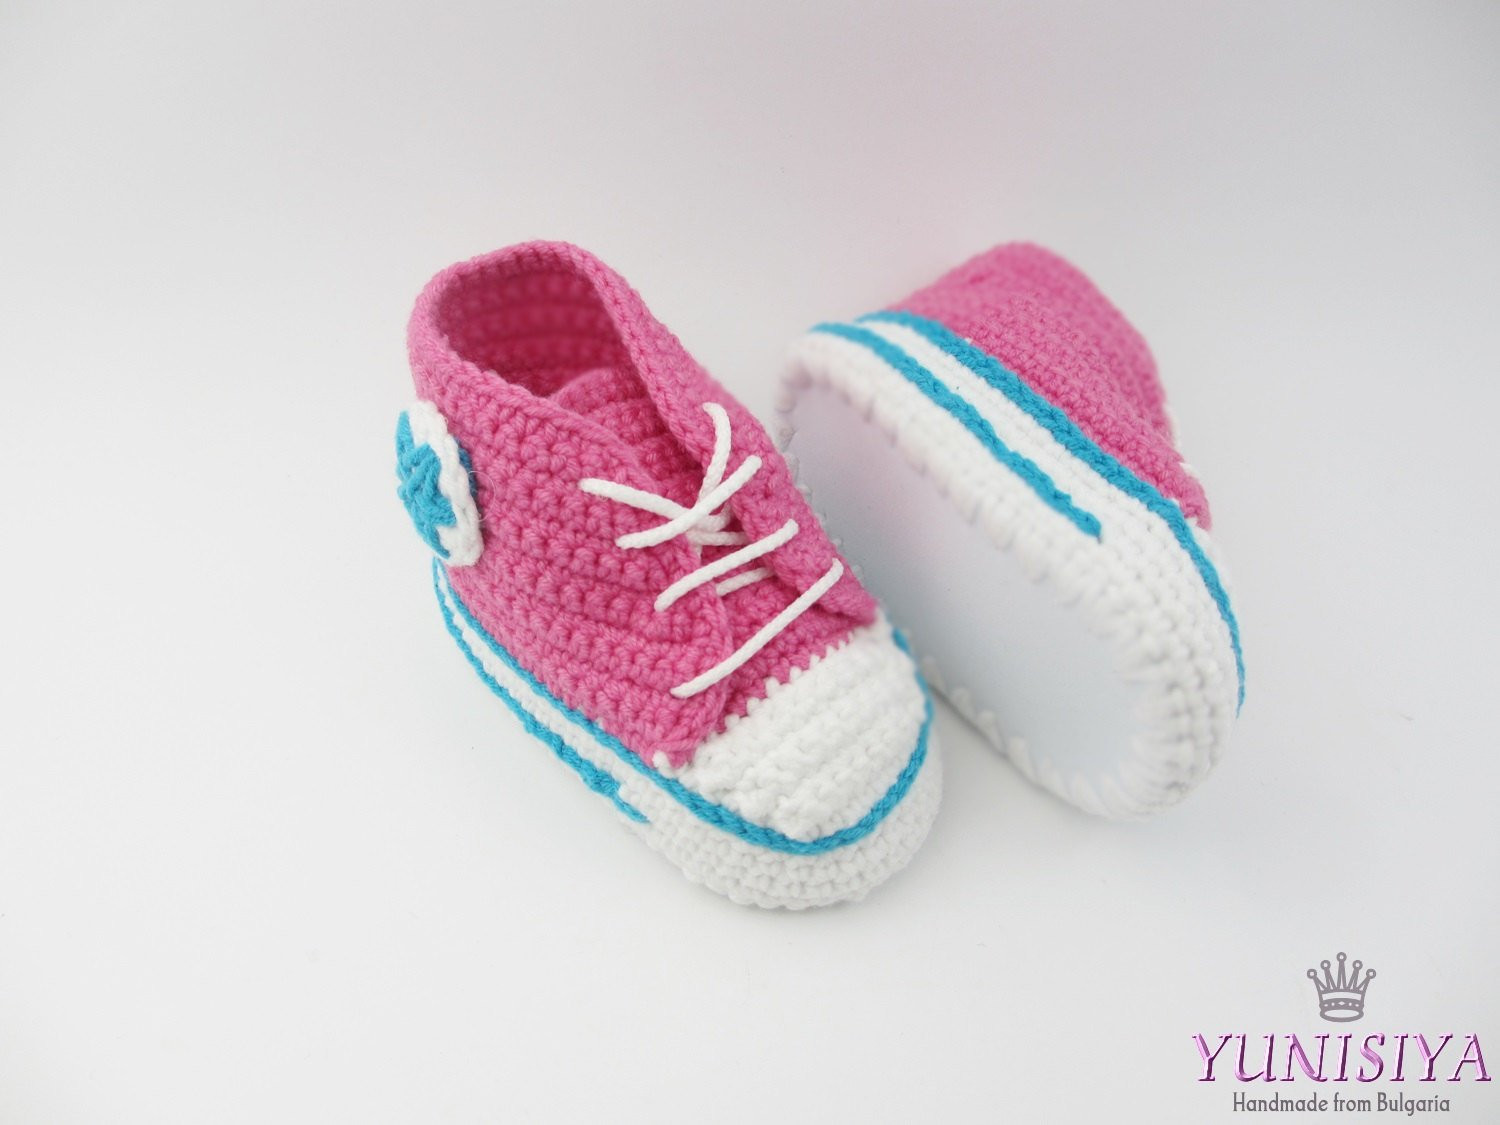 Best Of Crochet Converse Baby Sneakers Crochet Baby Booties by Crochet Converse Baby Booties Of Wonderful 41 Models Crochet Converse Baby Booties